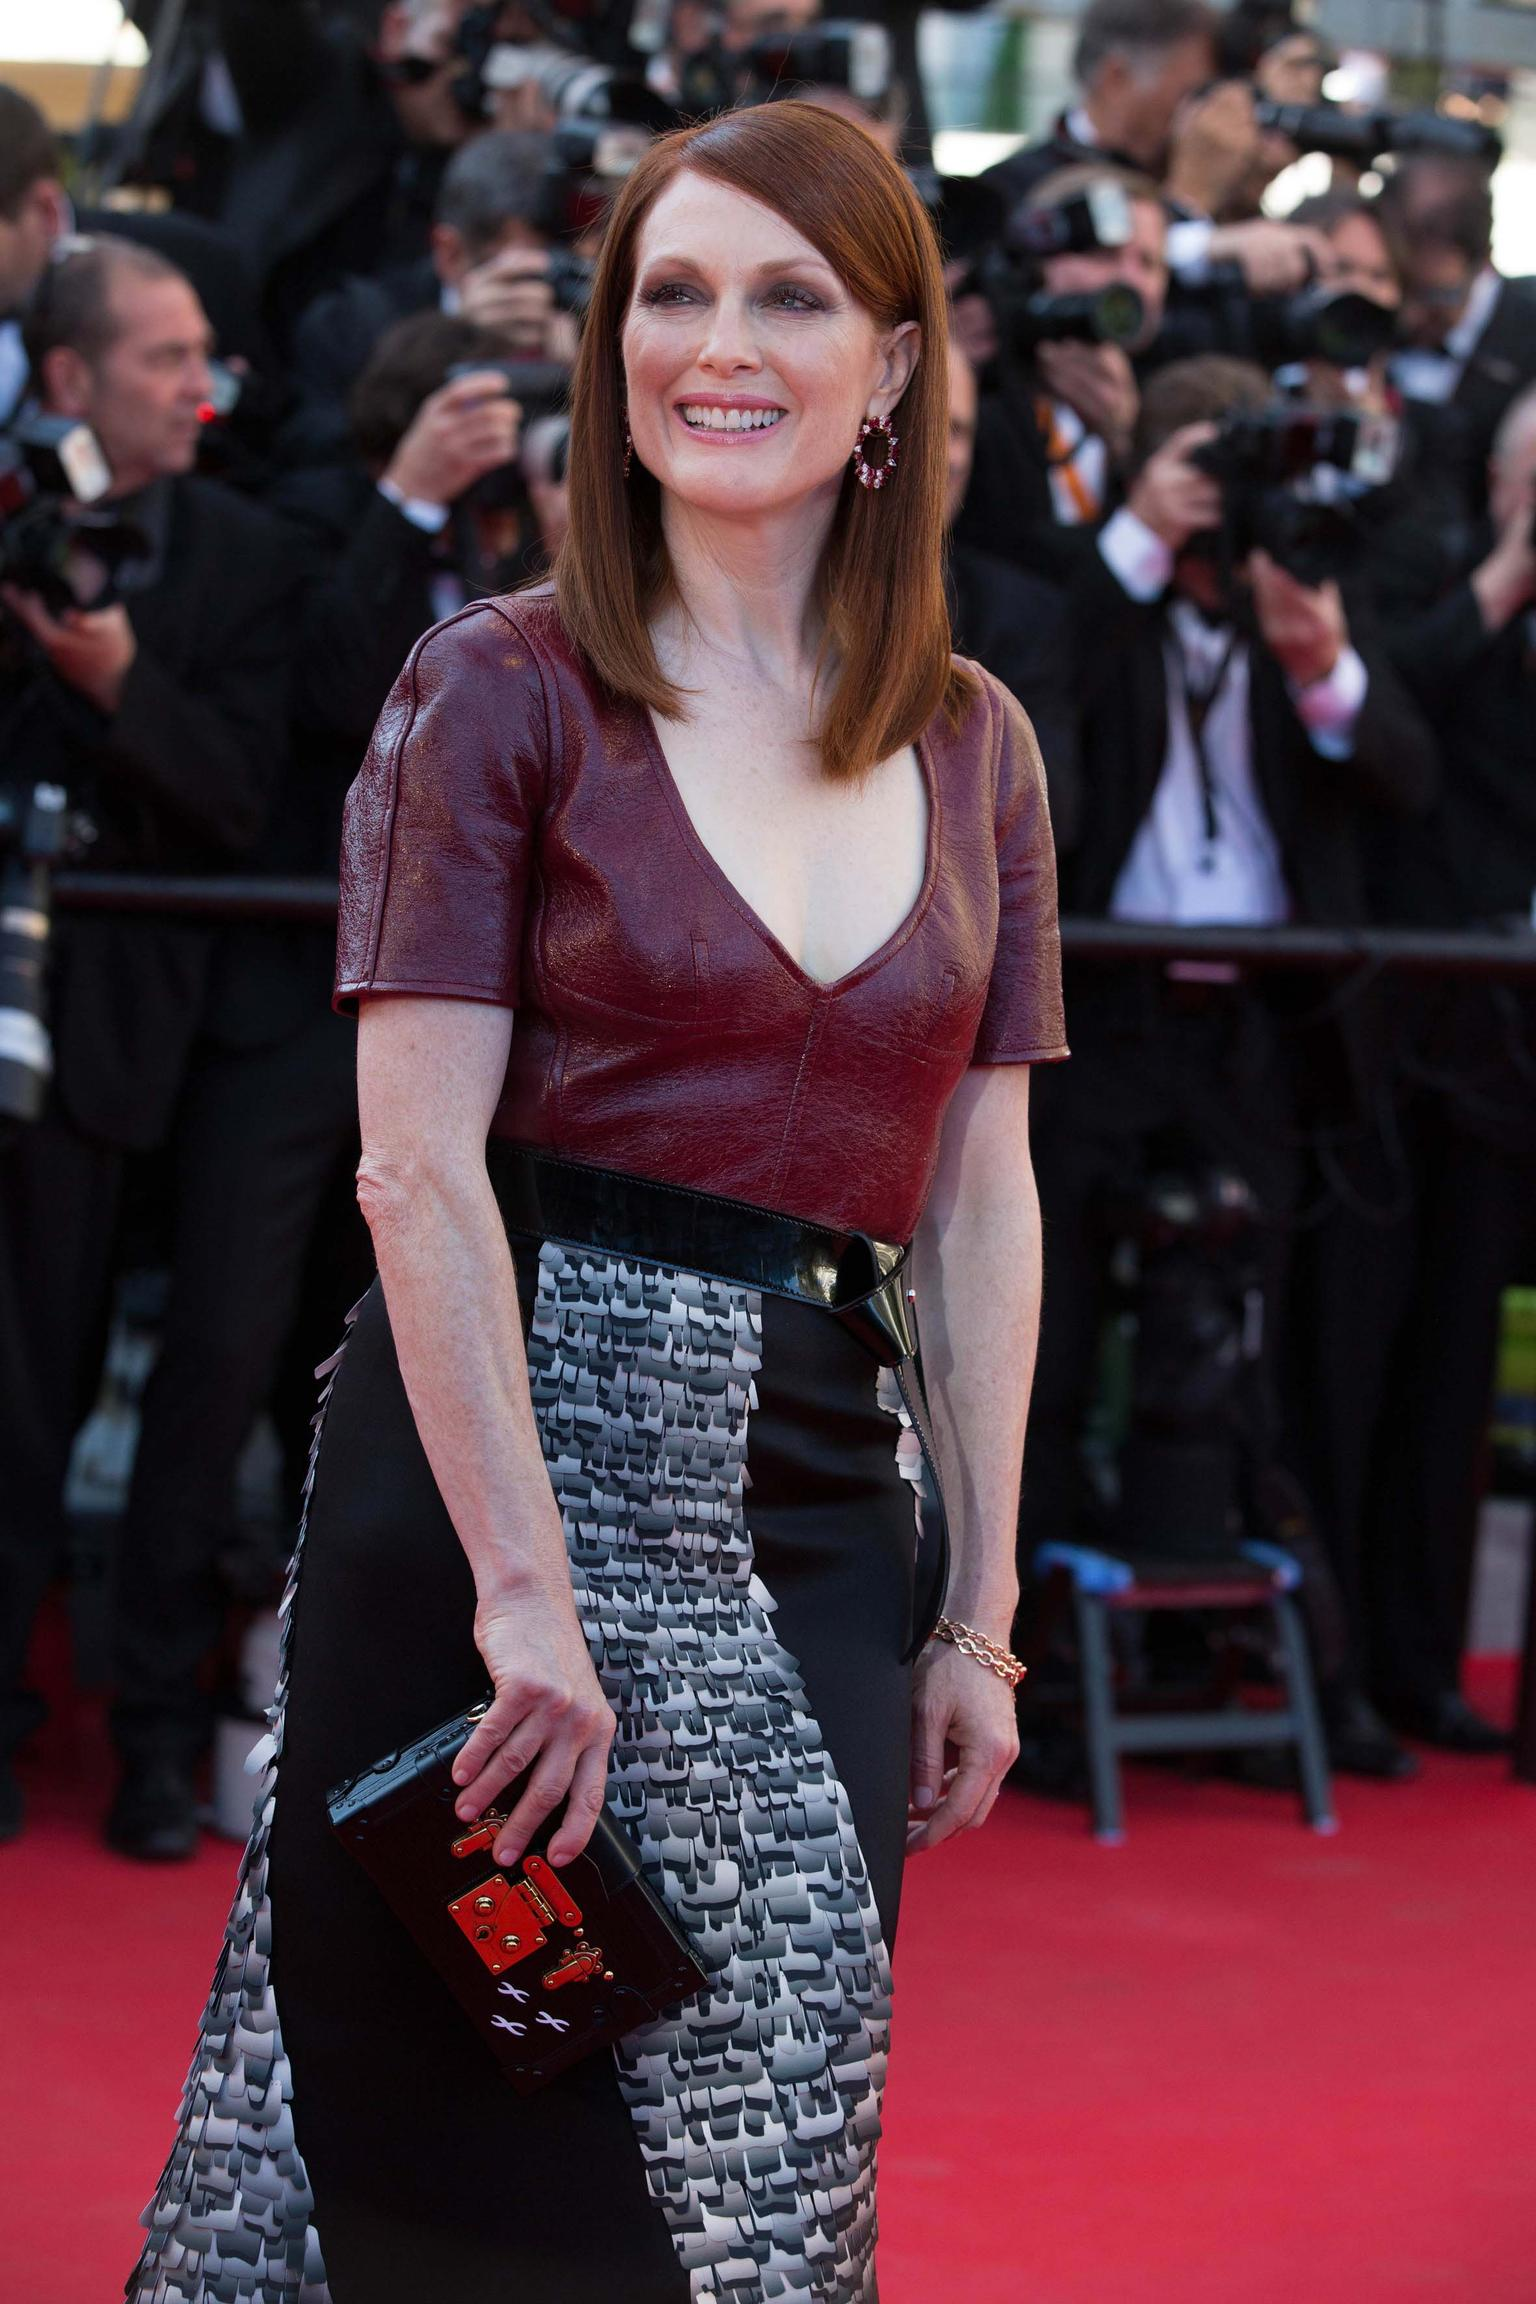 For the premiere of 'Mr Turner' at the 67th Cannes Film Festival, Julianne Moore paired her custom-designed Louis Vuitton with ruby and diamond wreath earrings and two rose gold chain bracelets by Chopard